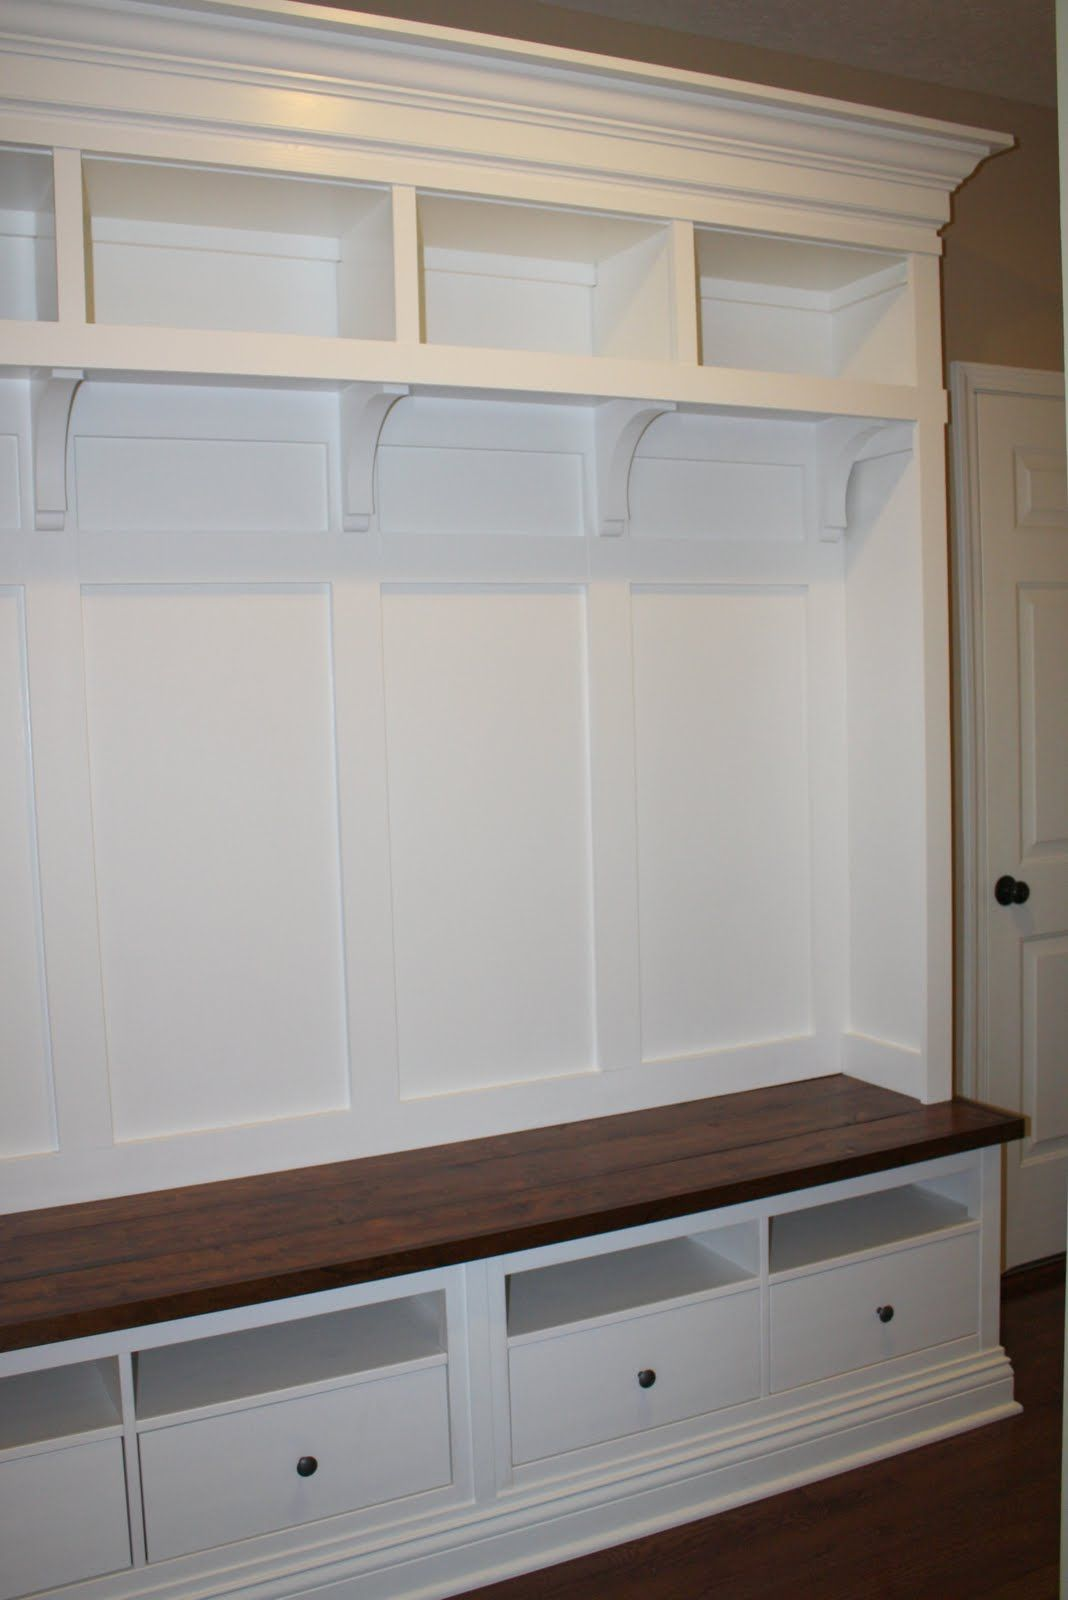 ideas decor and gallery fascinating plan cute ikea bench collection wallpaper mudroom home unique